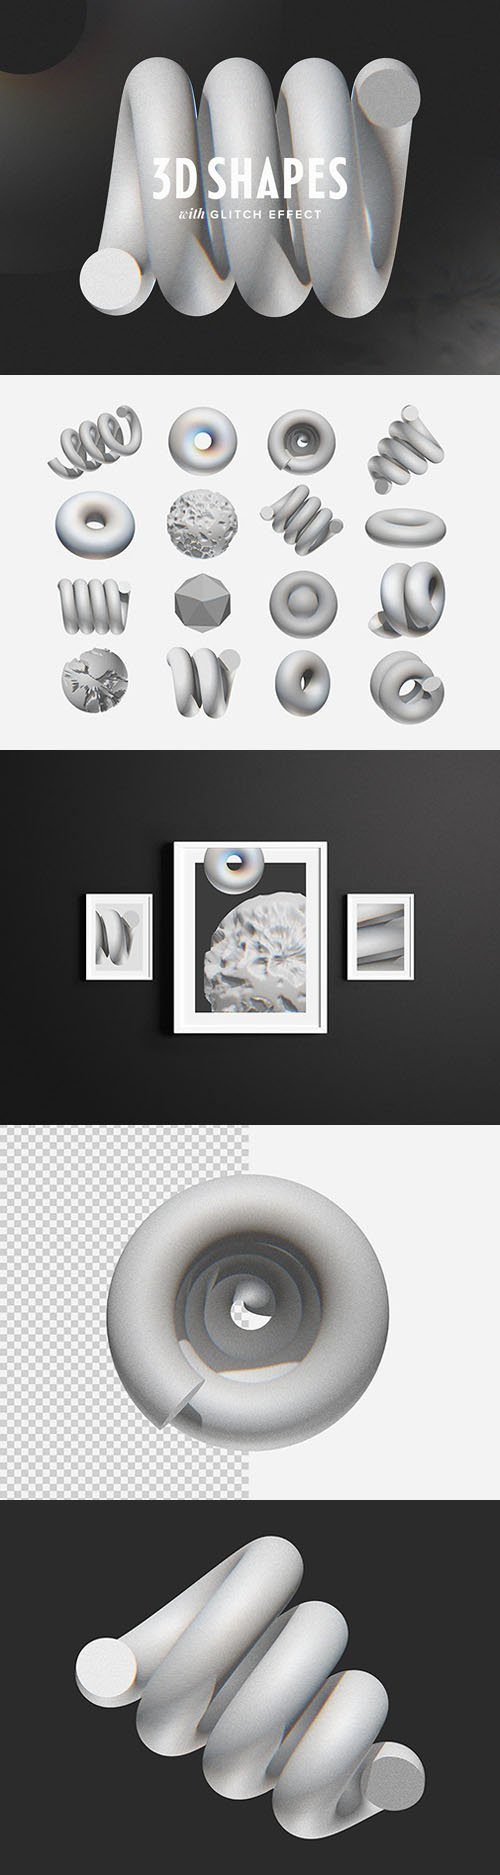 3D Shapes PNG With Glitch Effects